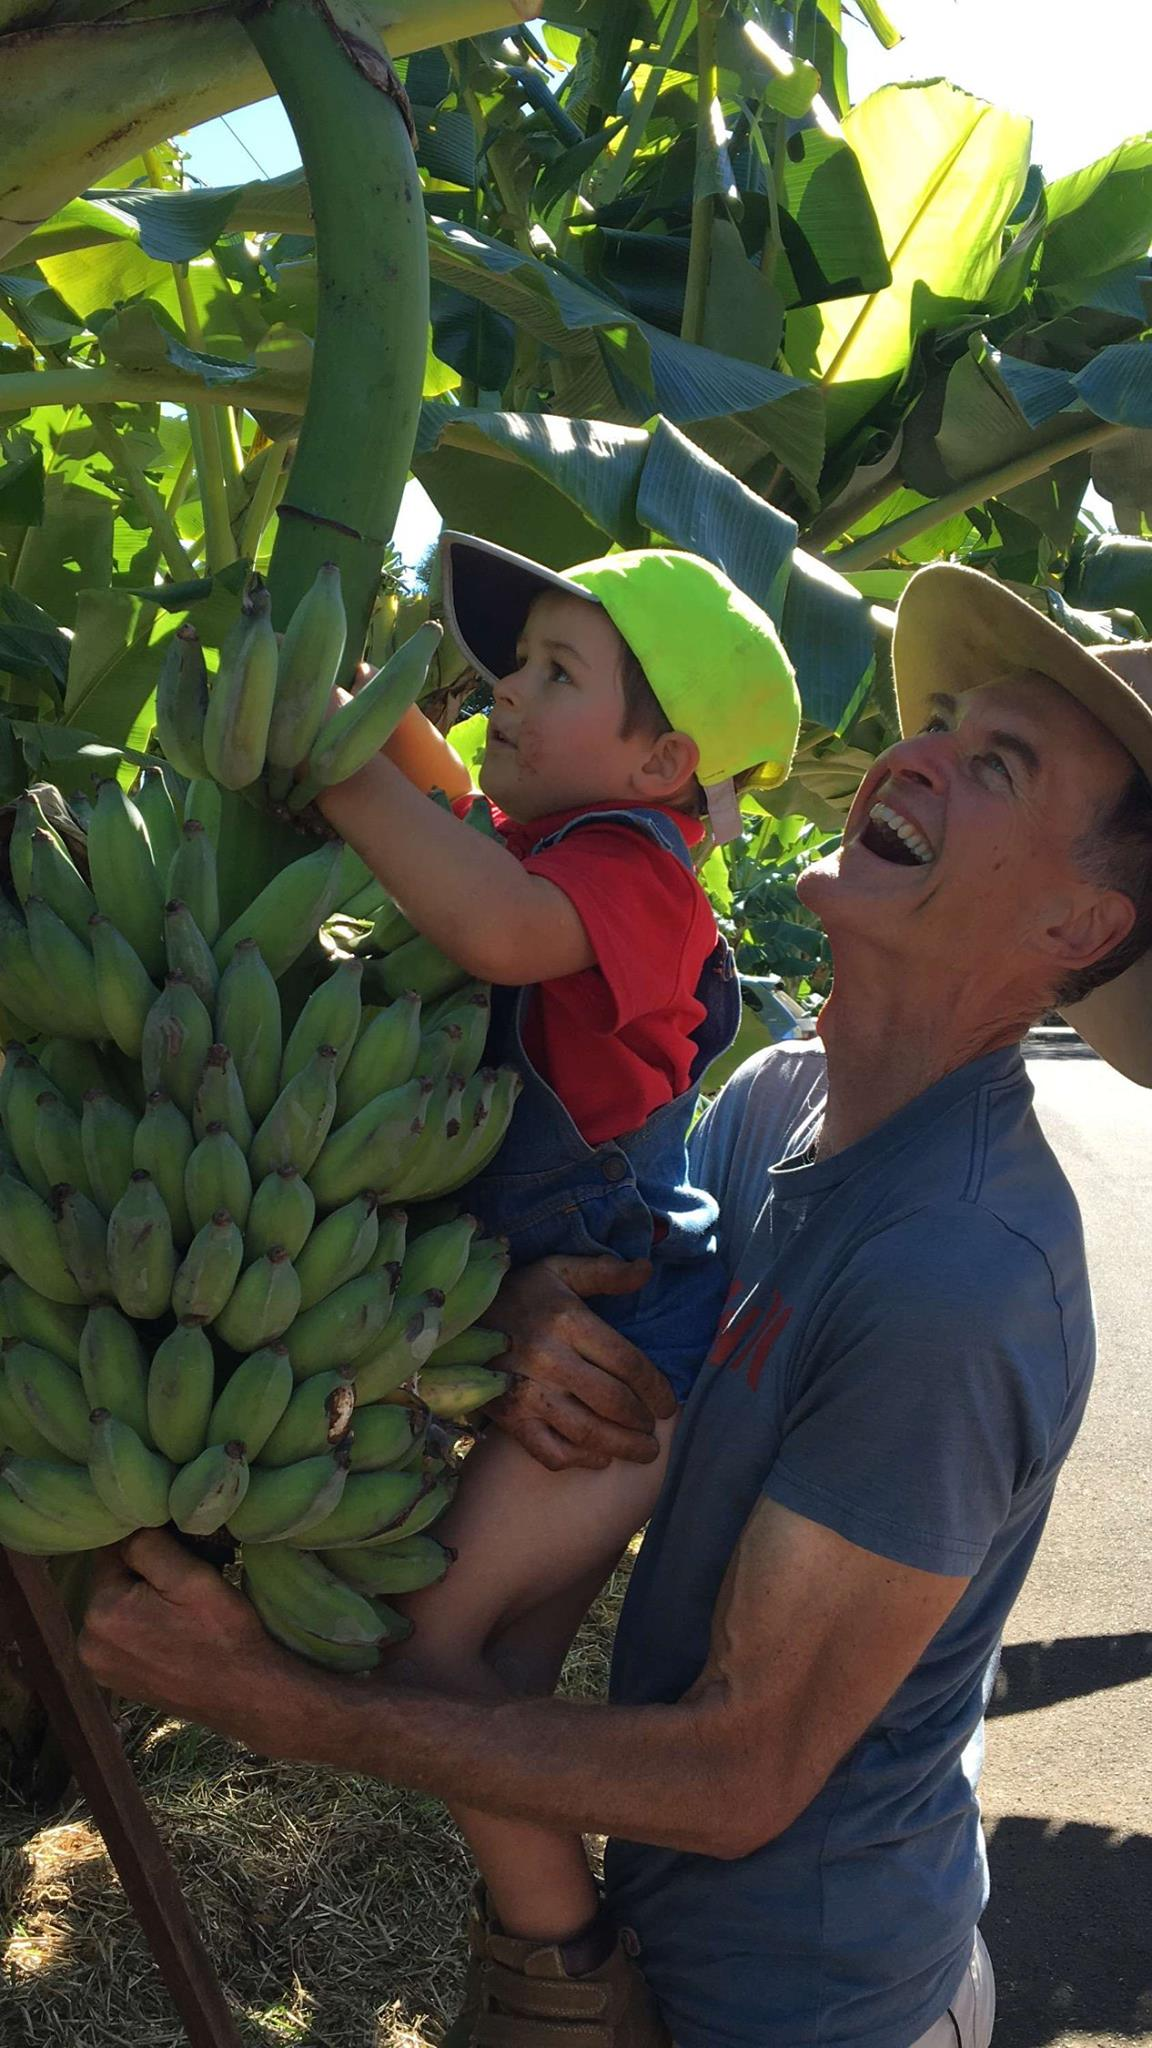 Duncan helps Isaac harvest verge-grown bananas during the Better Homes and Gardens shoot.